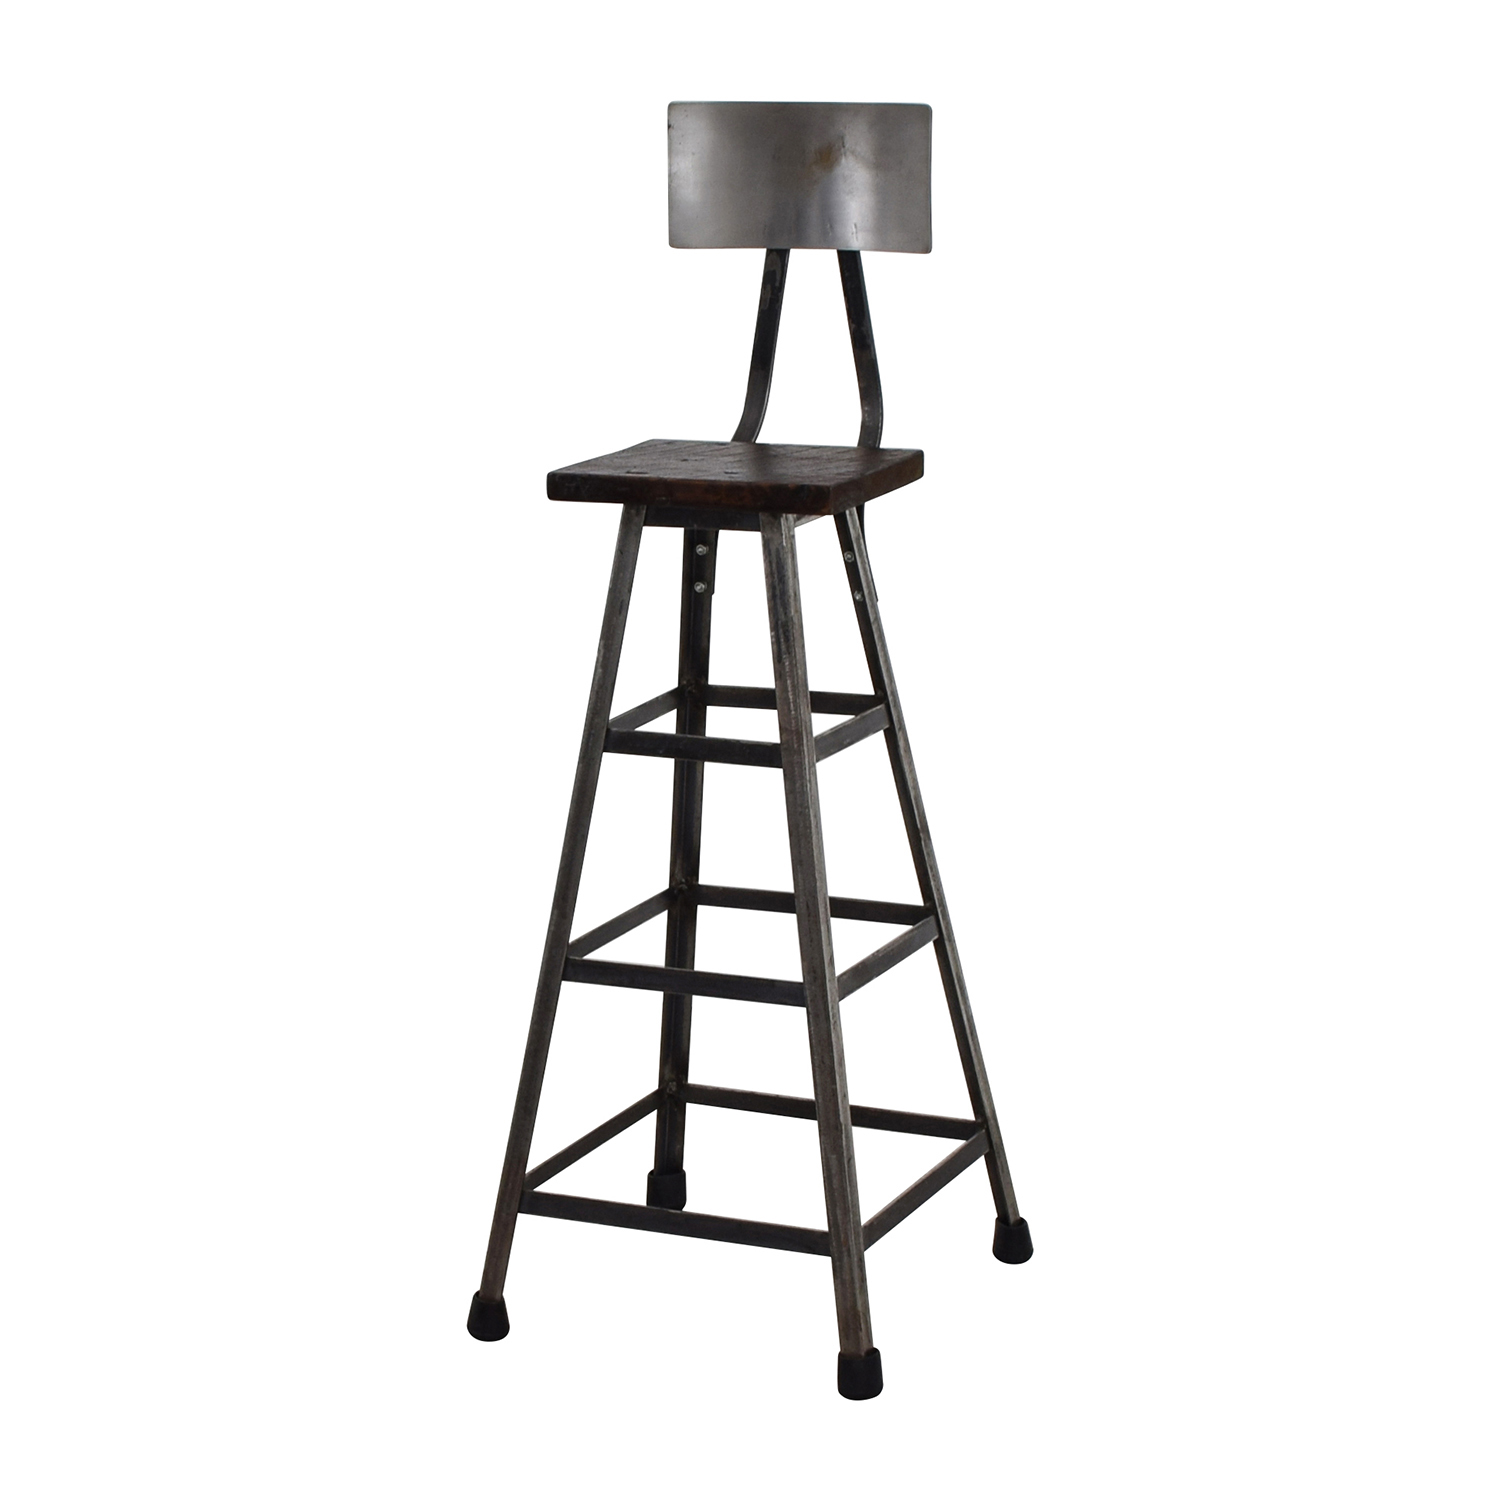 78 Off Custom Metal High Bar Stool Chairs